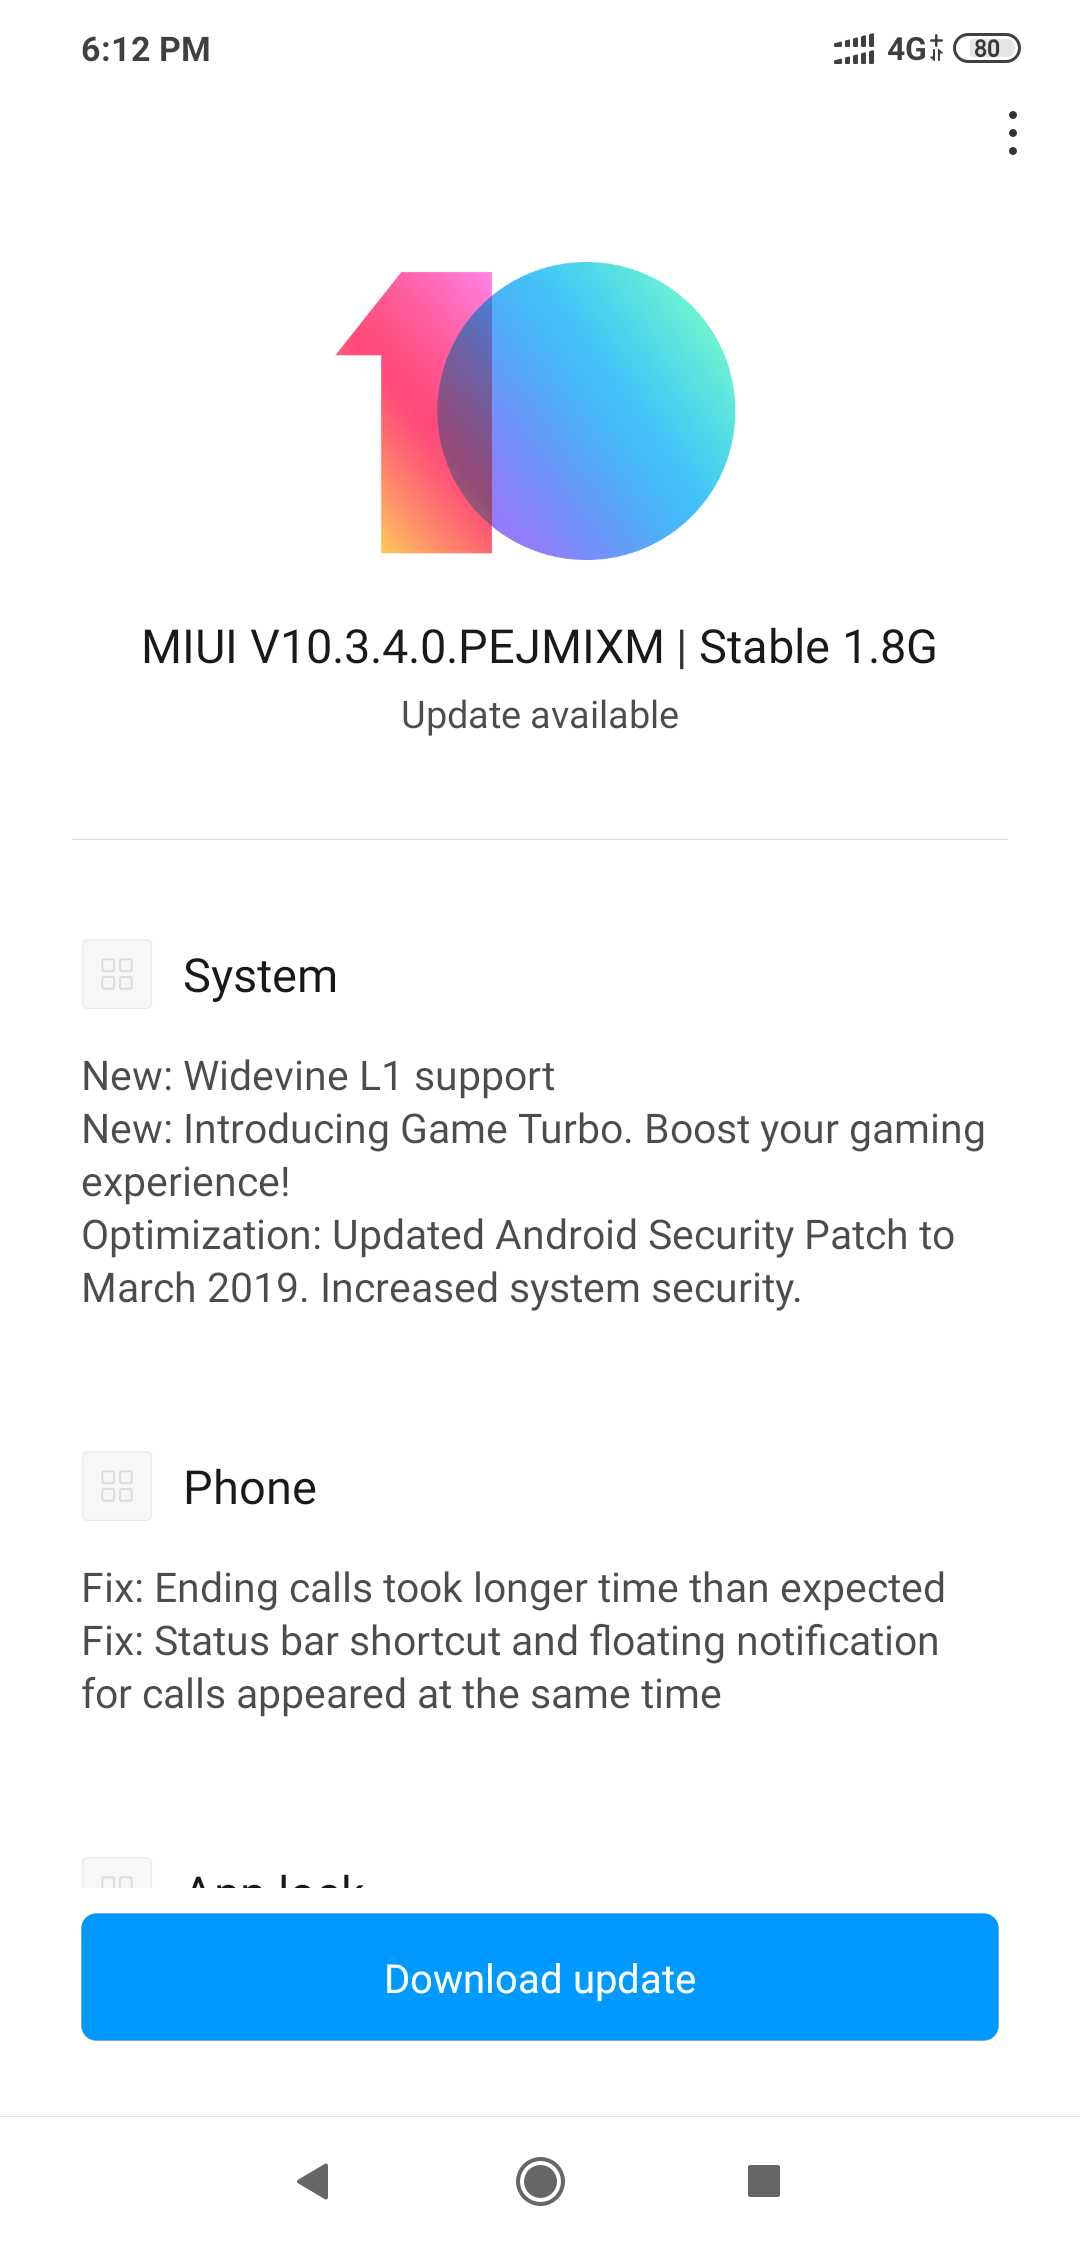 Xiaomi POCO F1 Gets Game Turbo Mode, Widevine L1 Support, 4K 60FPS